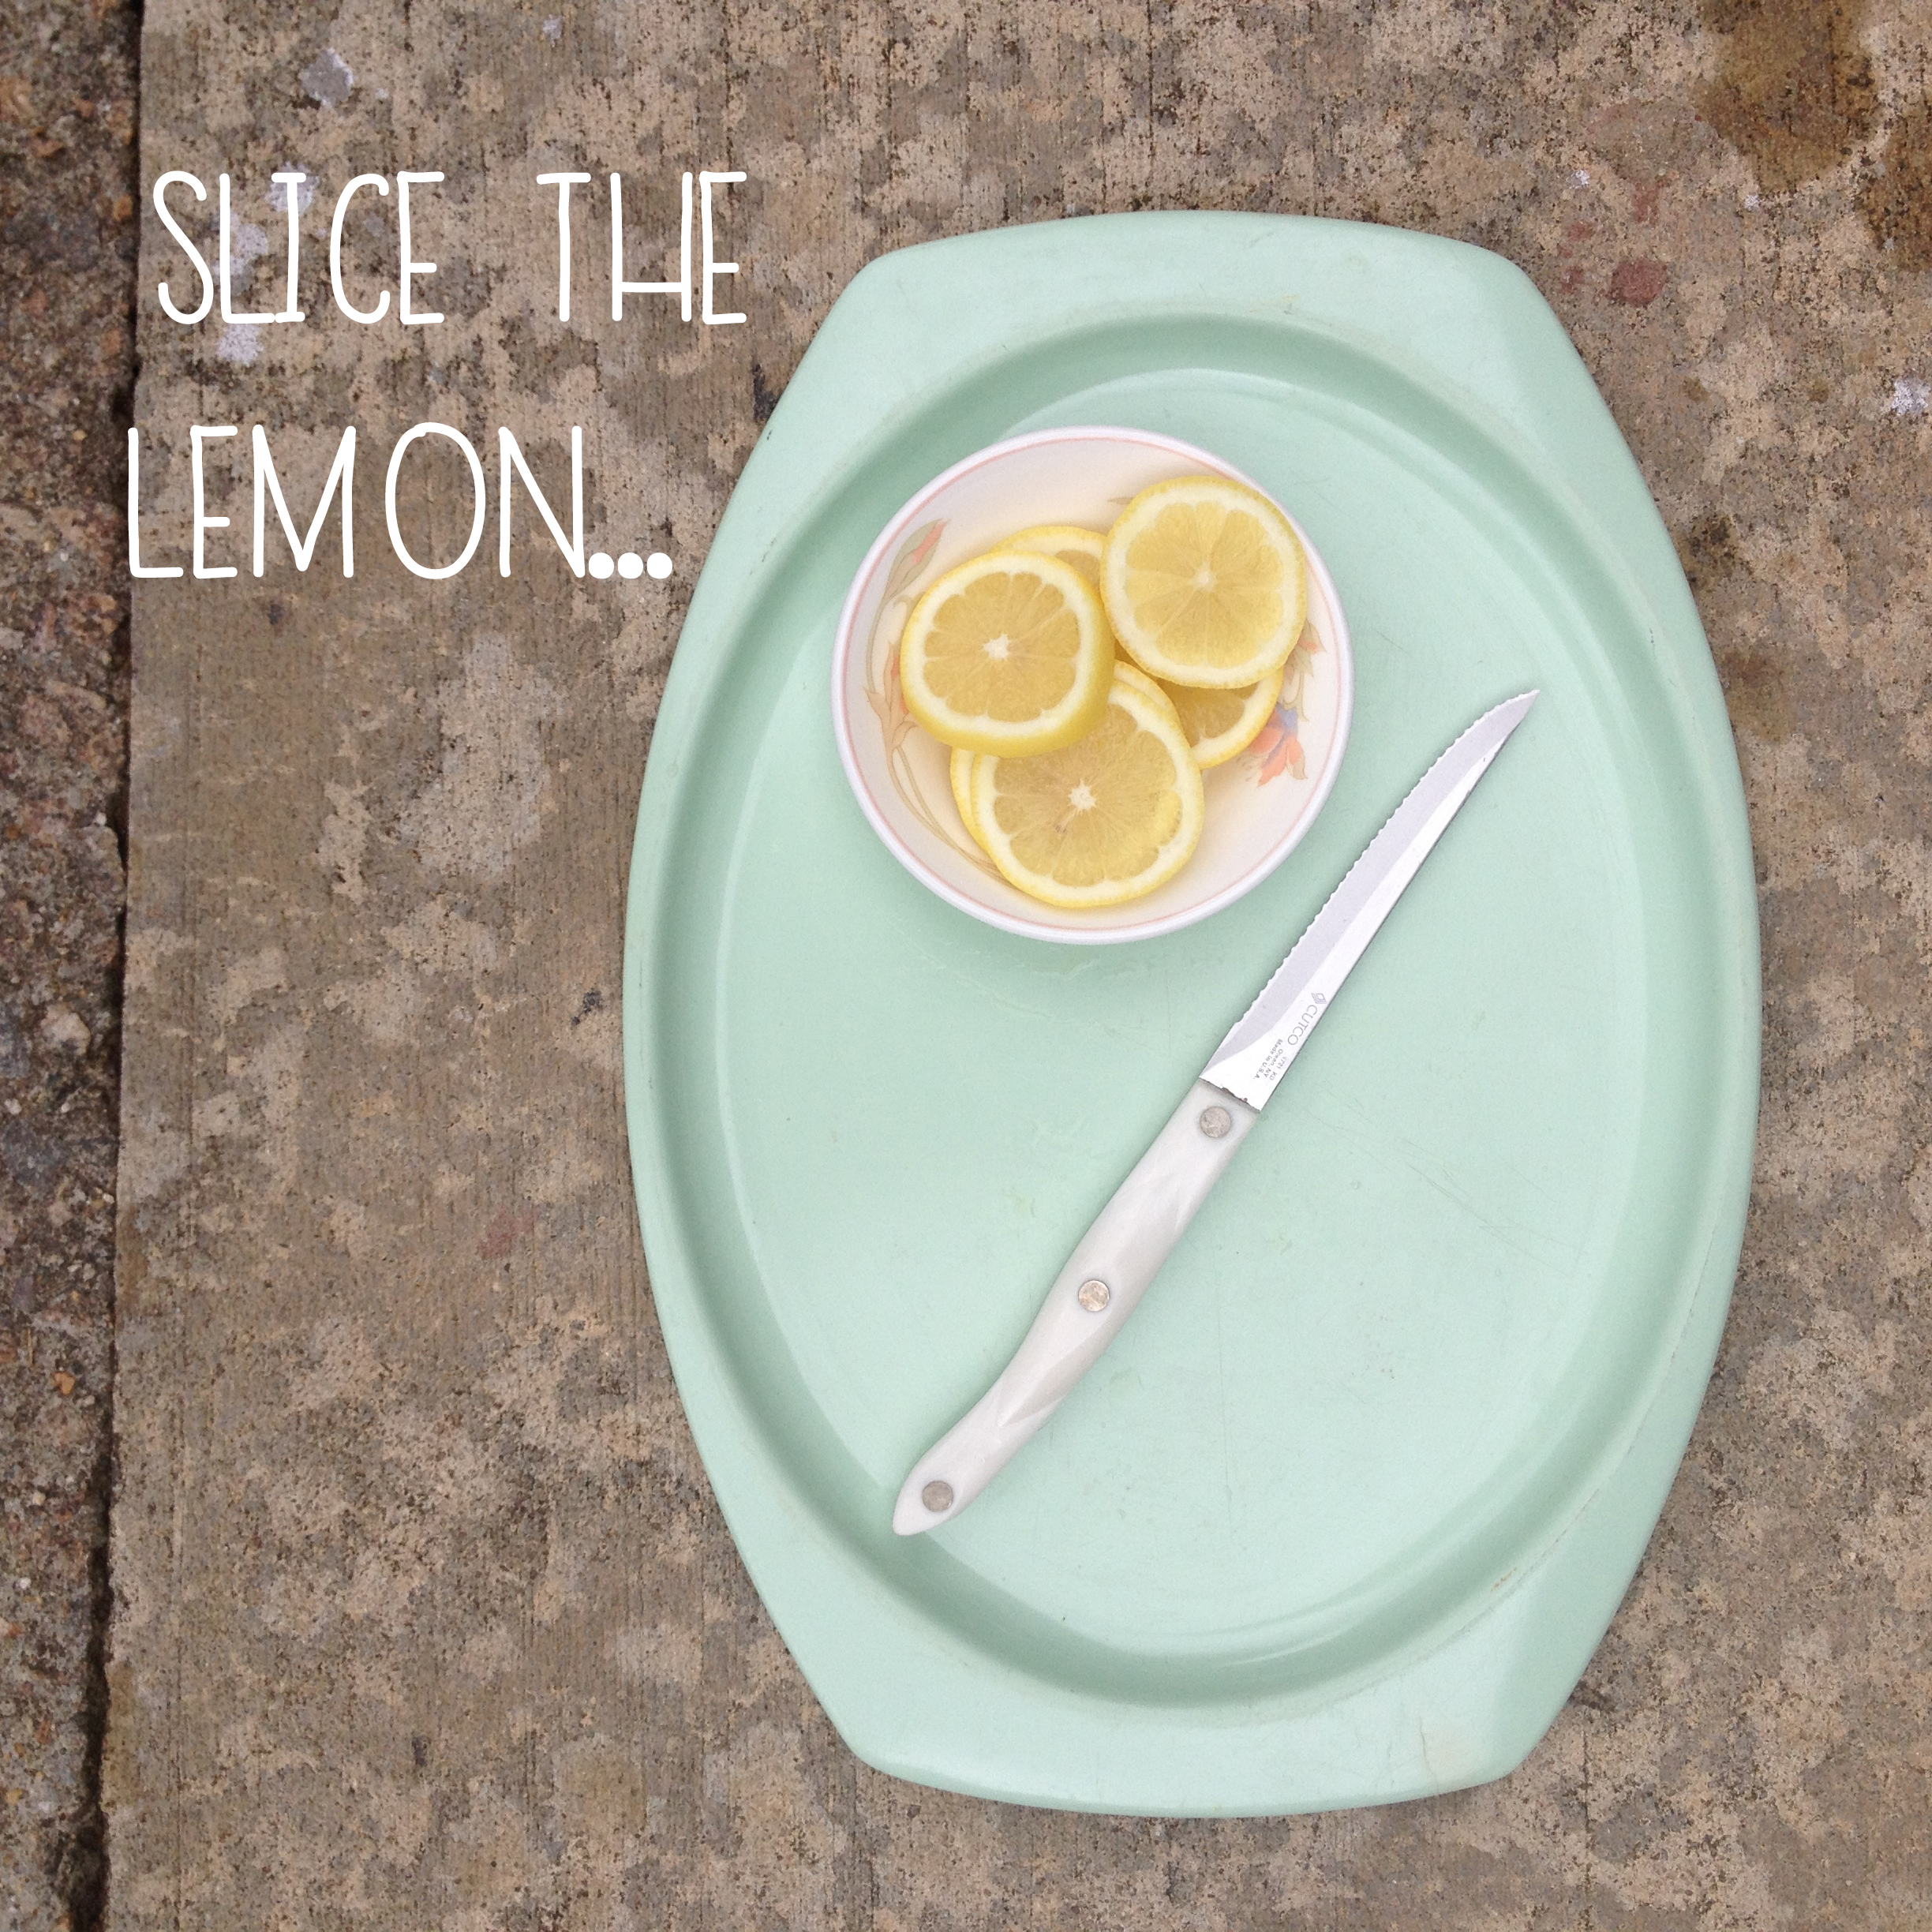 Slice the lemon